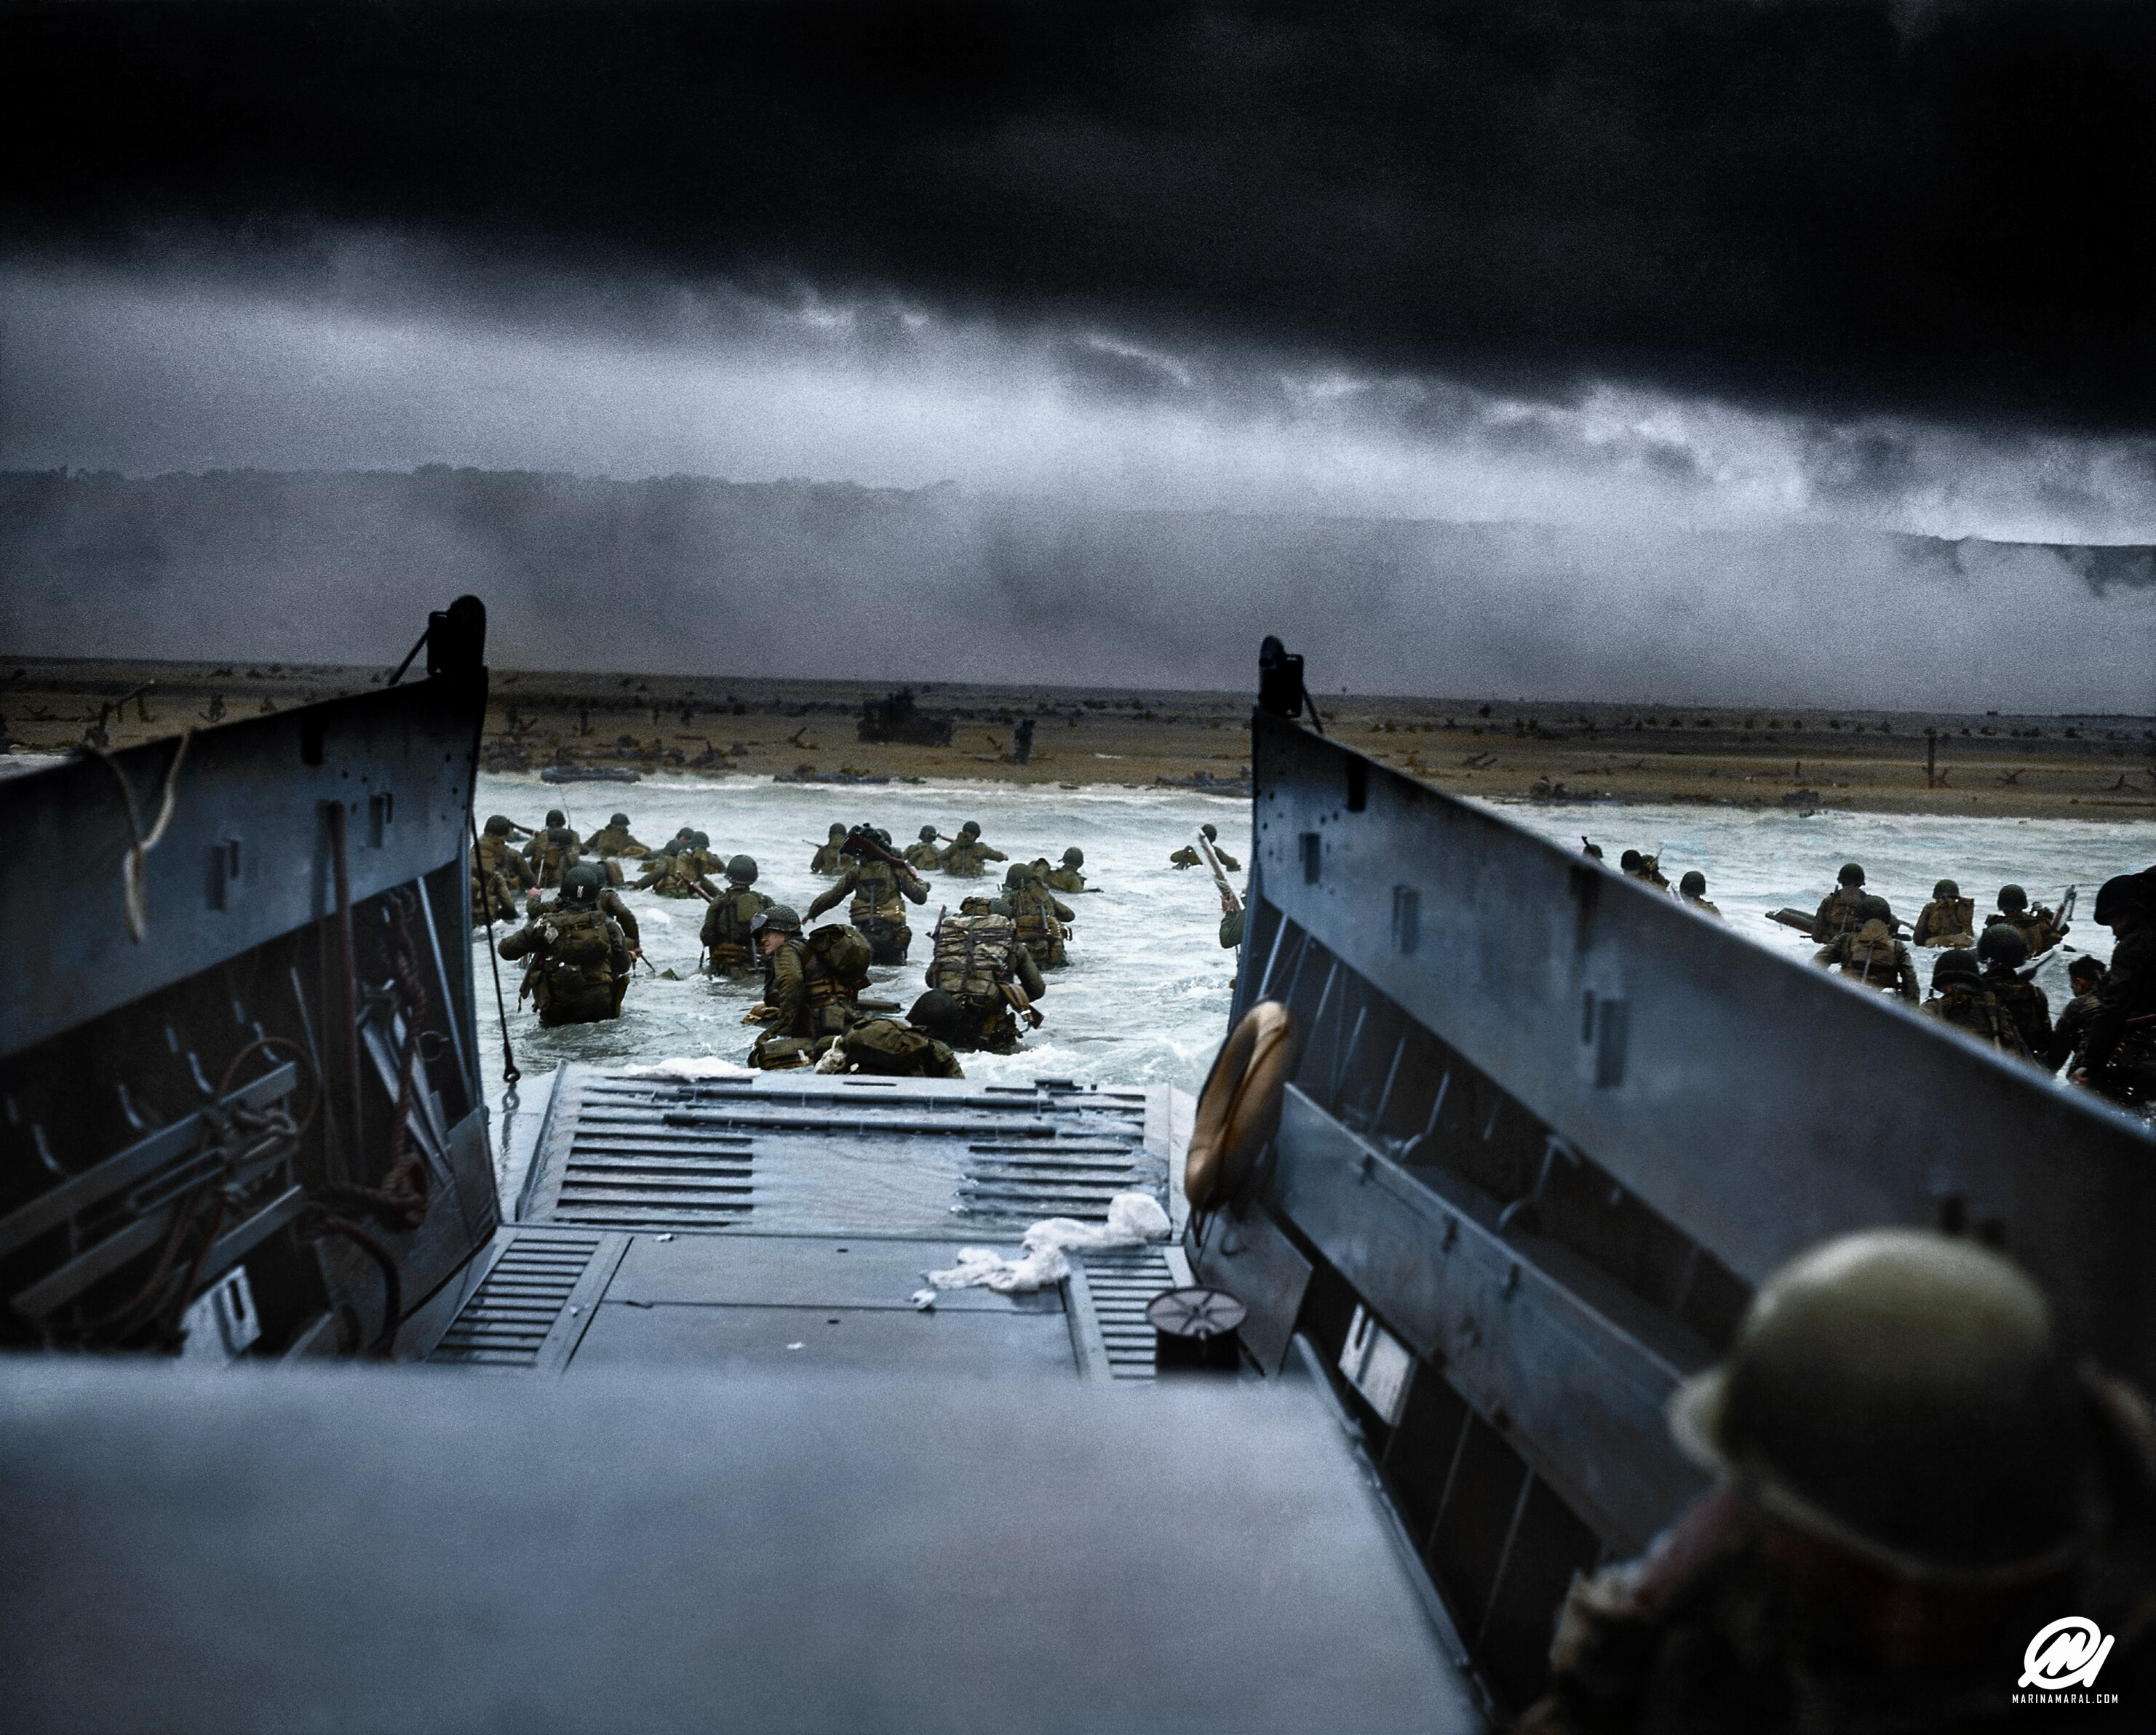 See iconic D-Day black and white photos brought to life in color